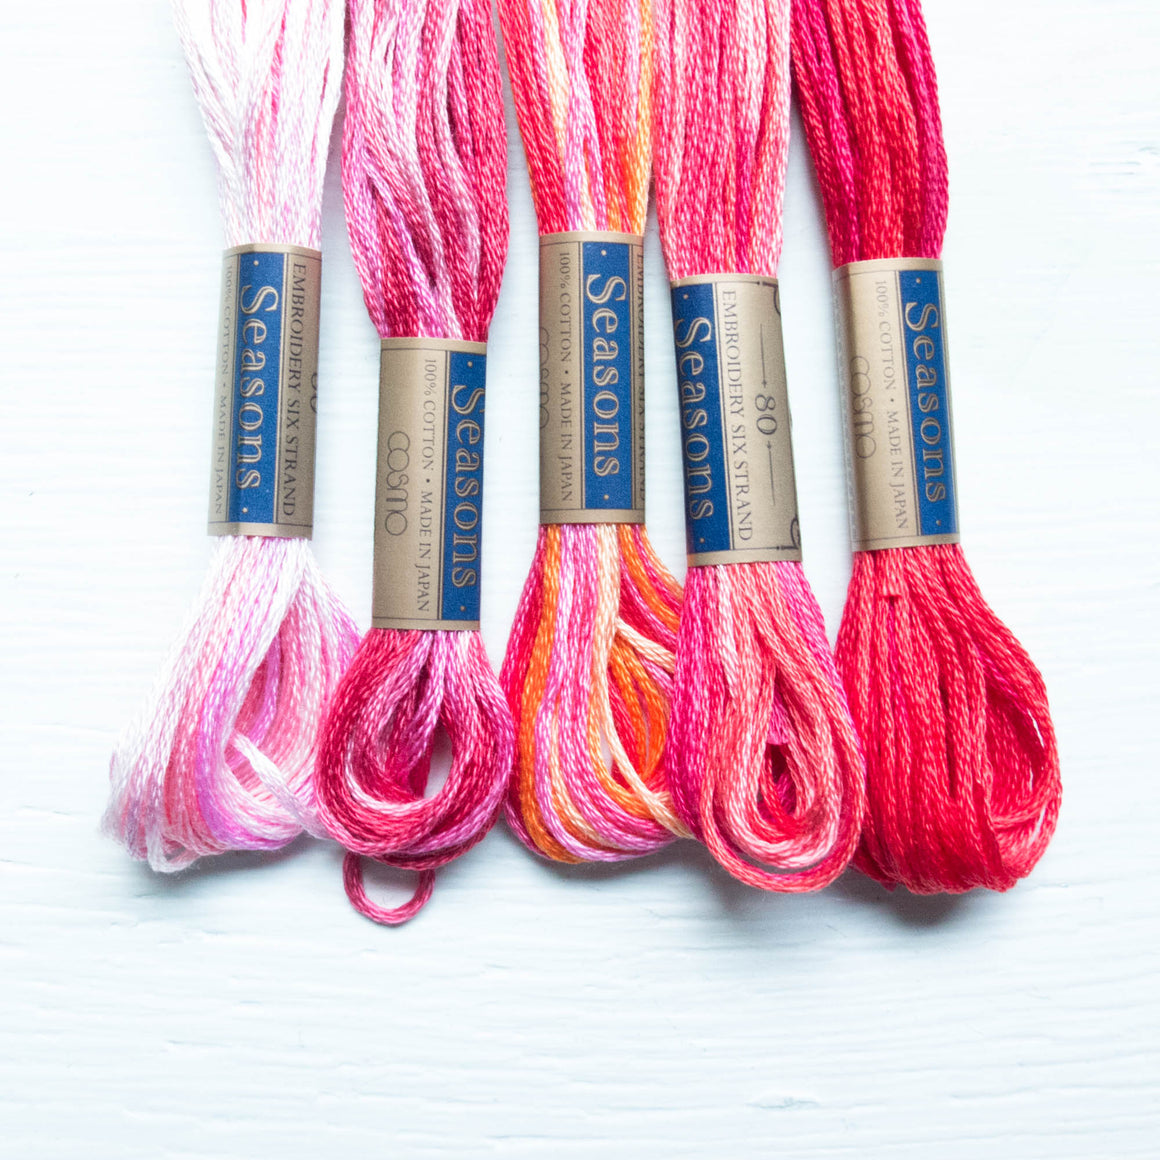 COSMO Seasons Variegated Embroidery Floss - 5001, 5002, 5003, 5004, 5005 Floss - Snuggly Monkey